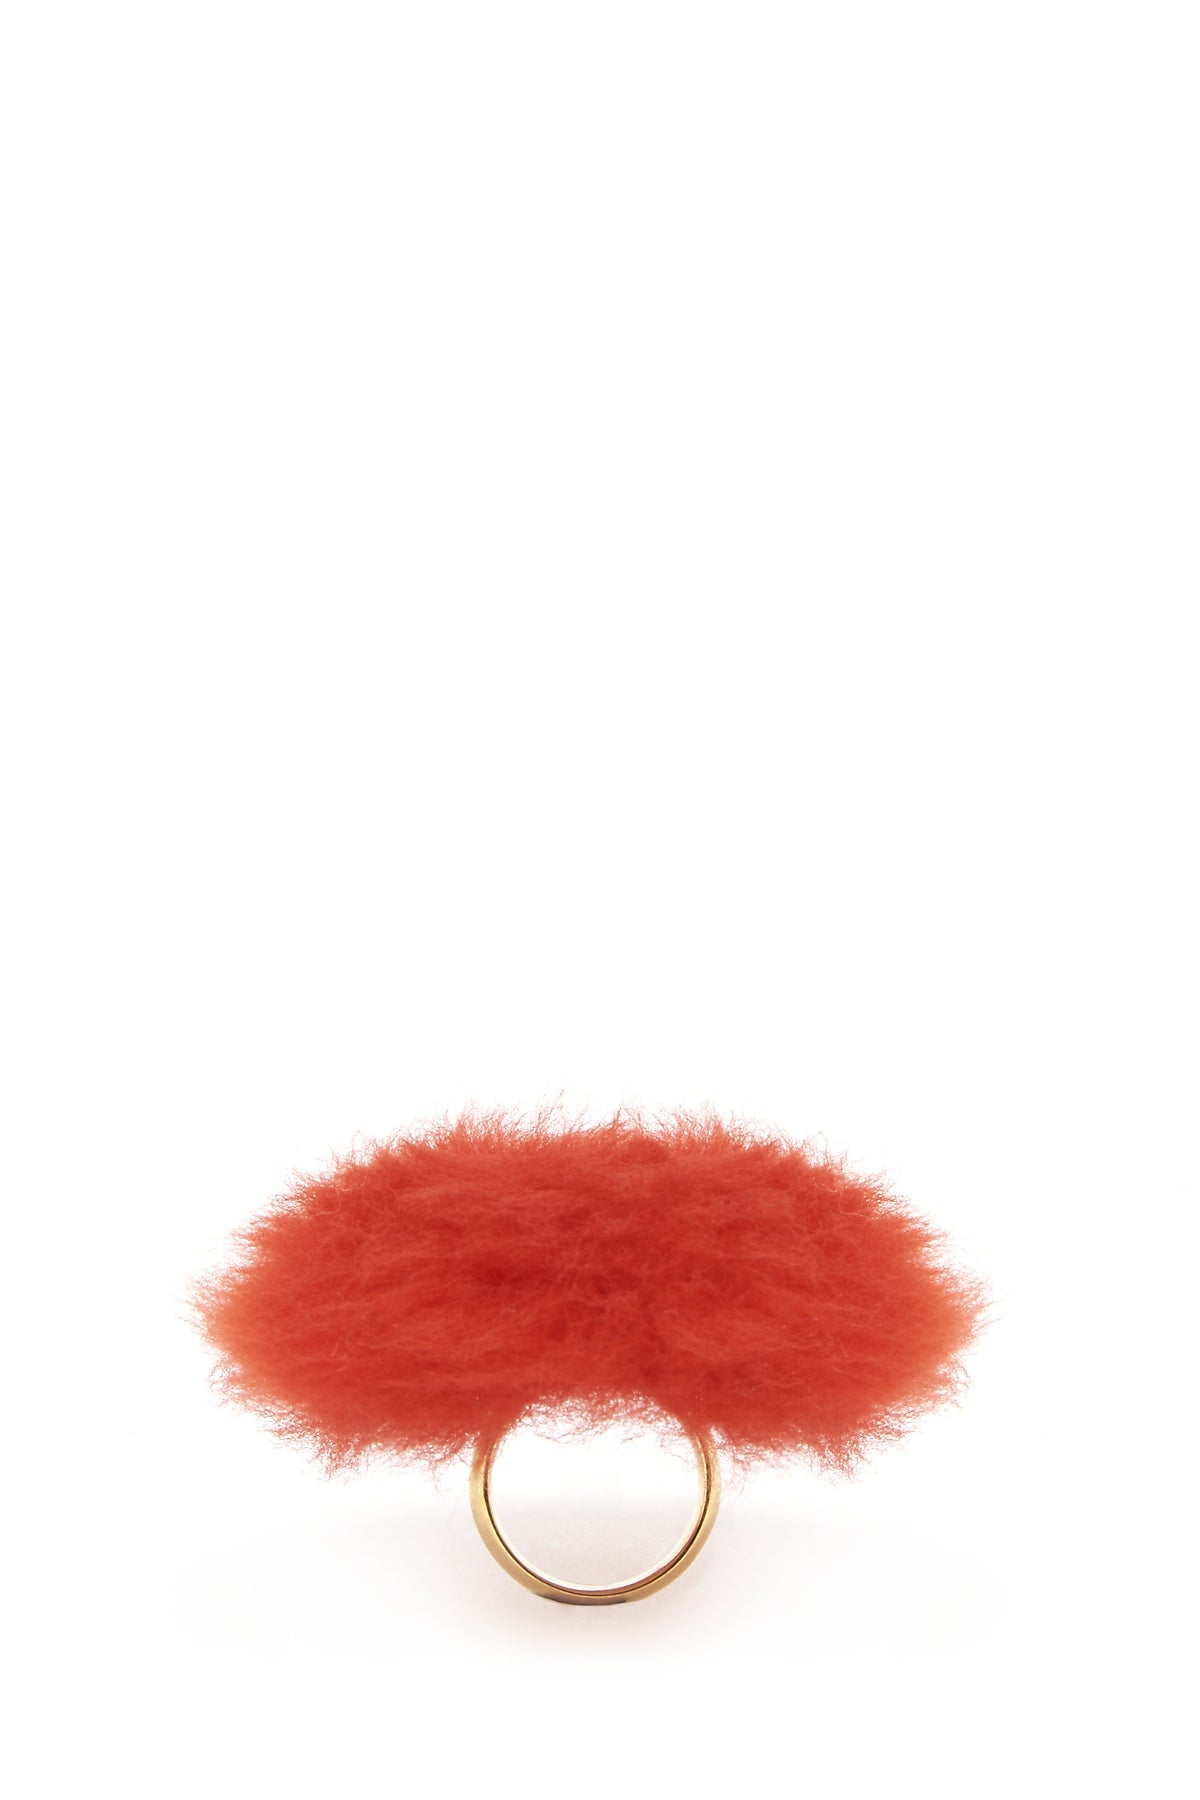 Balenciaga Fur Ring in Red